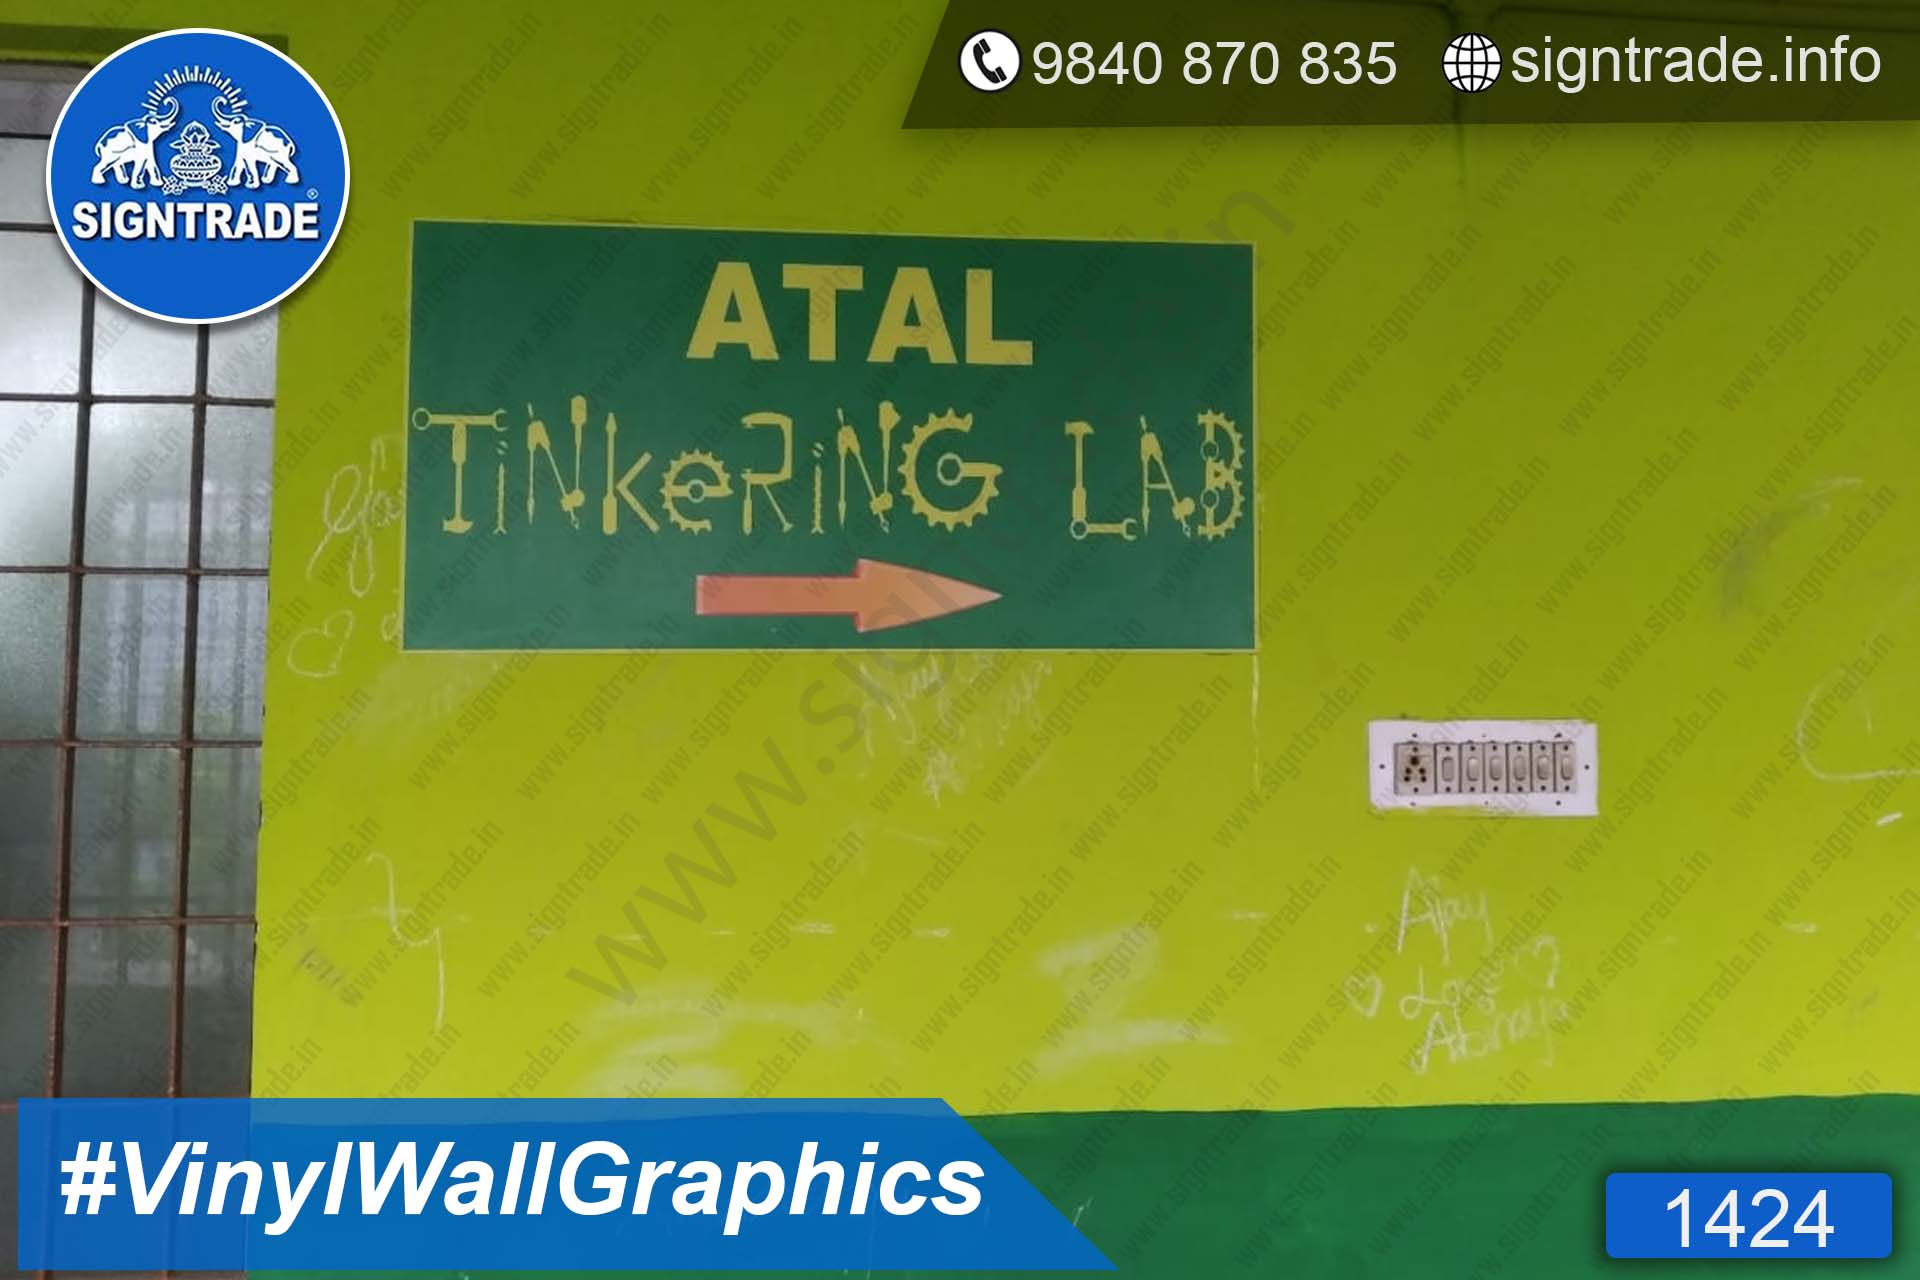 Atal Tinkering Lab (1 of 19) Images - 1424, Vinyl Graphics, Wall Graphics, Wall Wrapping, wall stickers, wall Wraps, Wall Branding, Wall Branding on foam board